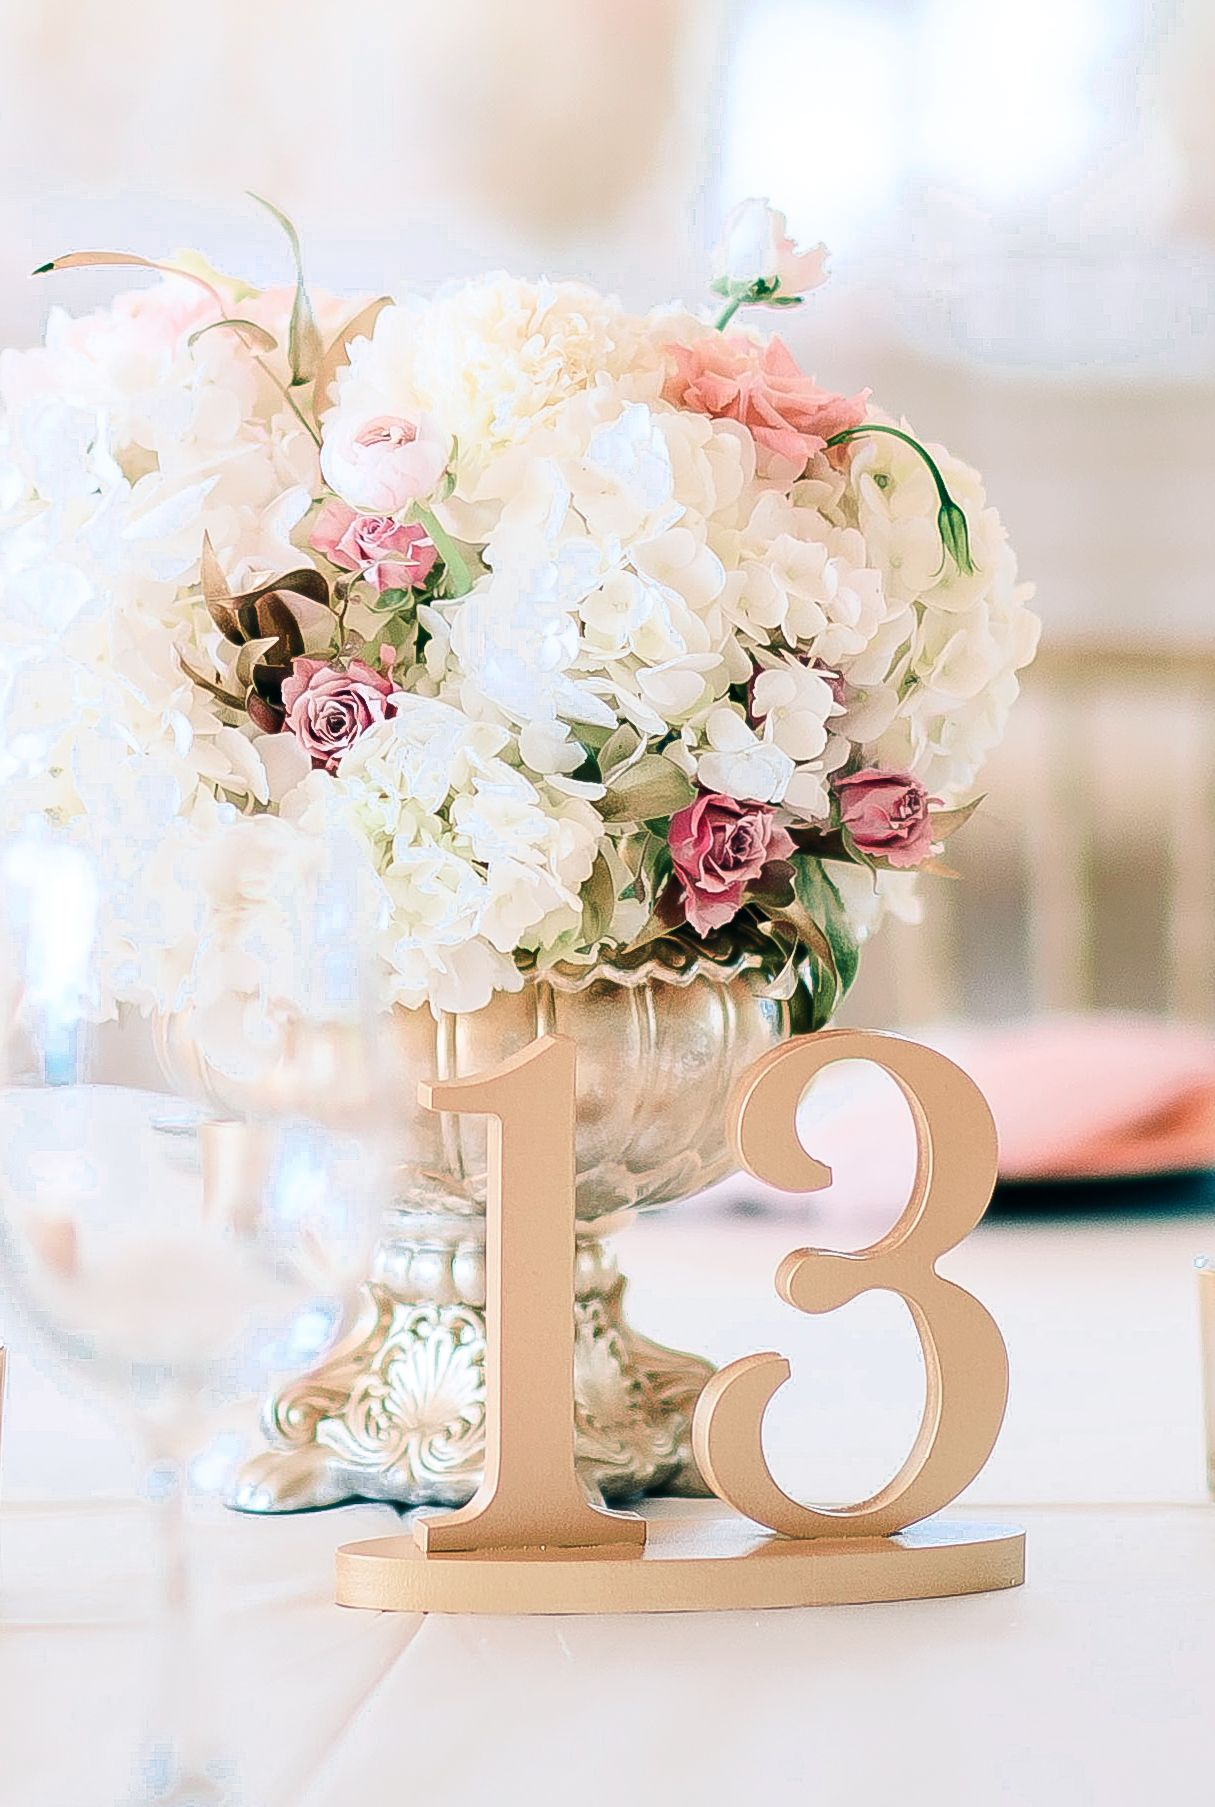 Painted Wedding Table Numbers in Metallic Rose Gold | Handmade ...